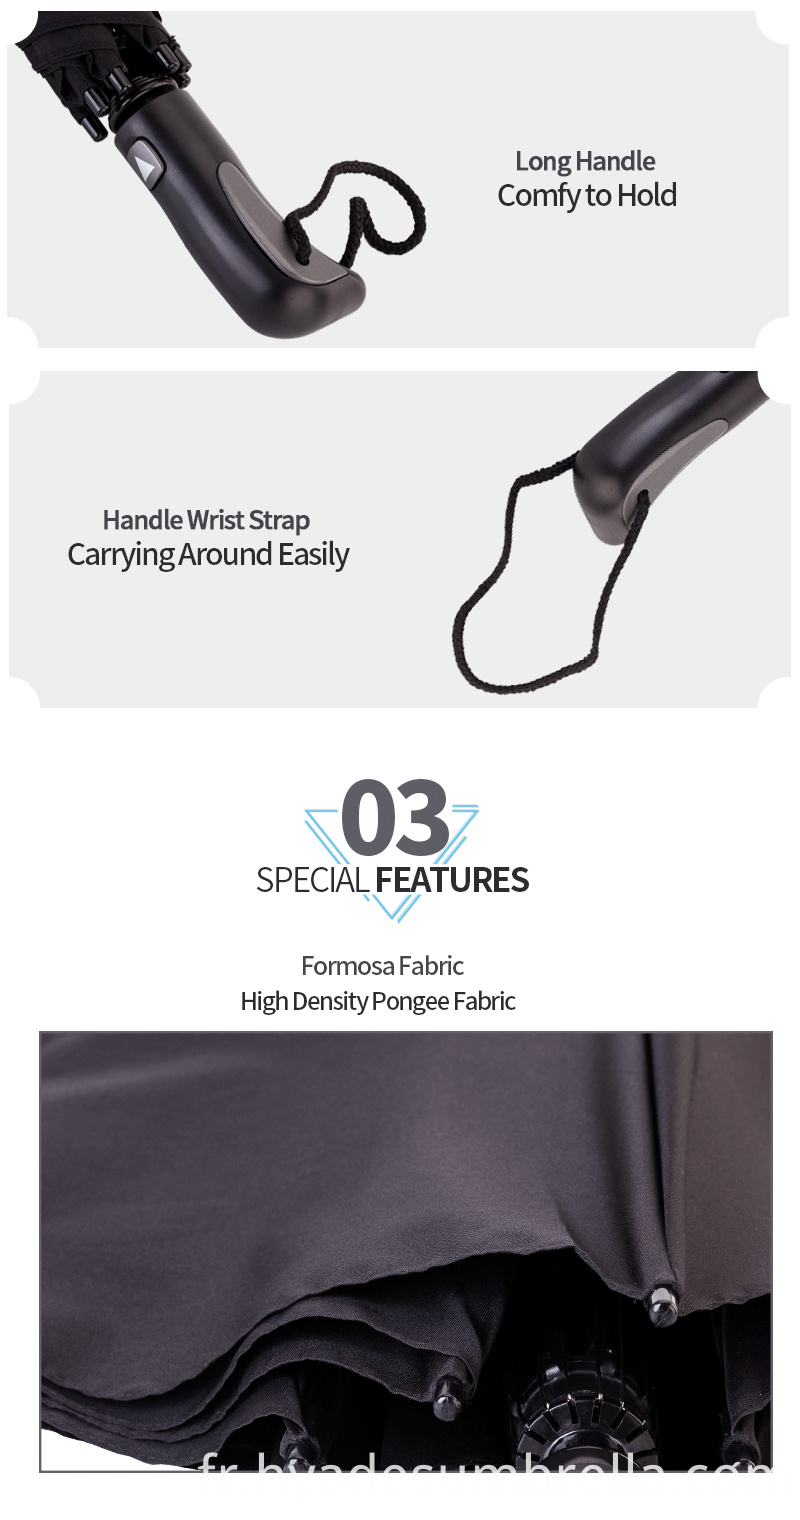 Mens 2 Folding Umbrella Long Handle To Grip